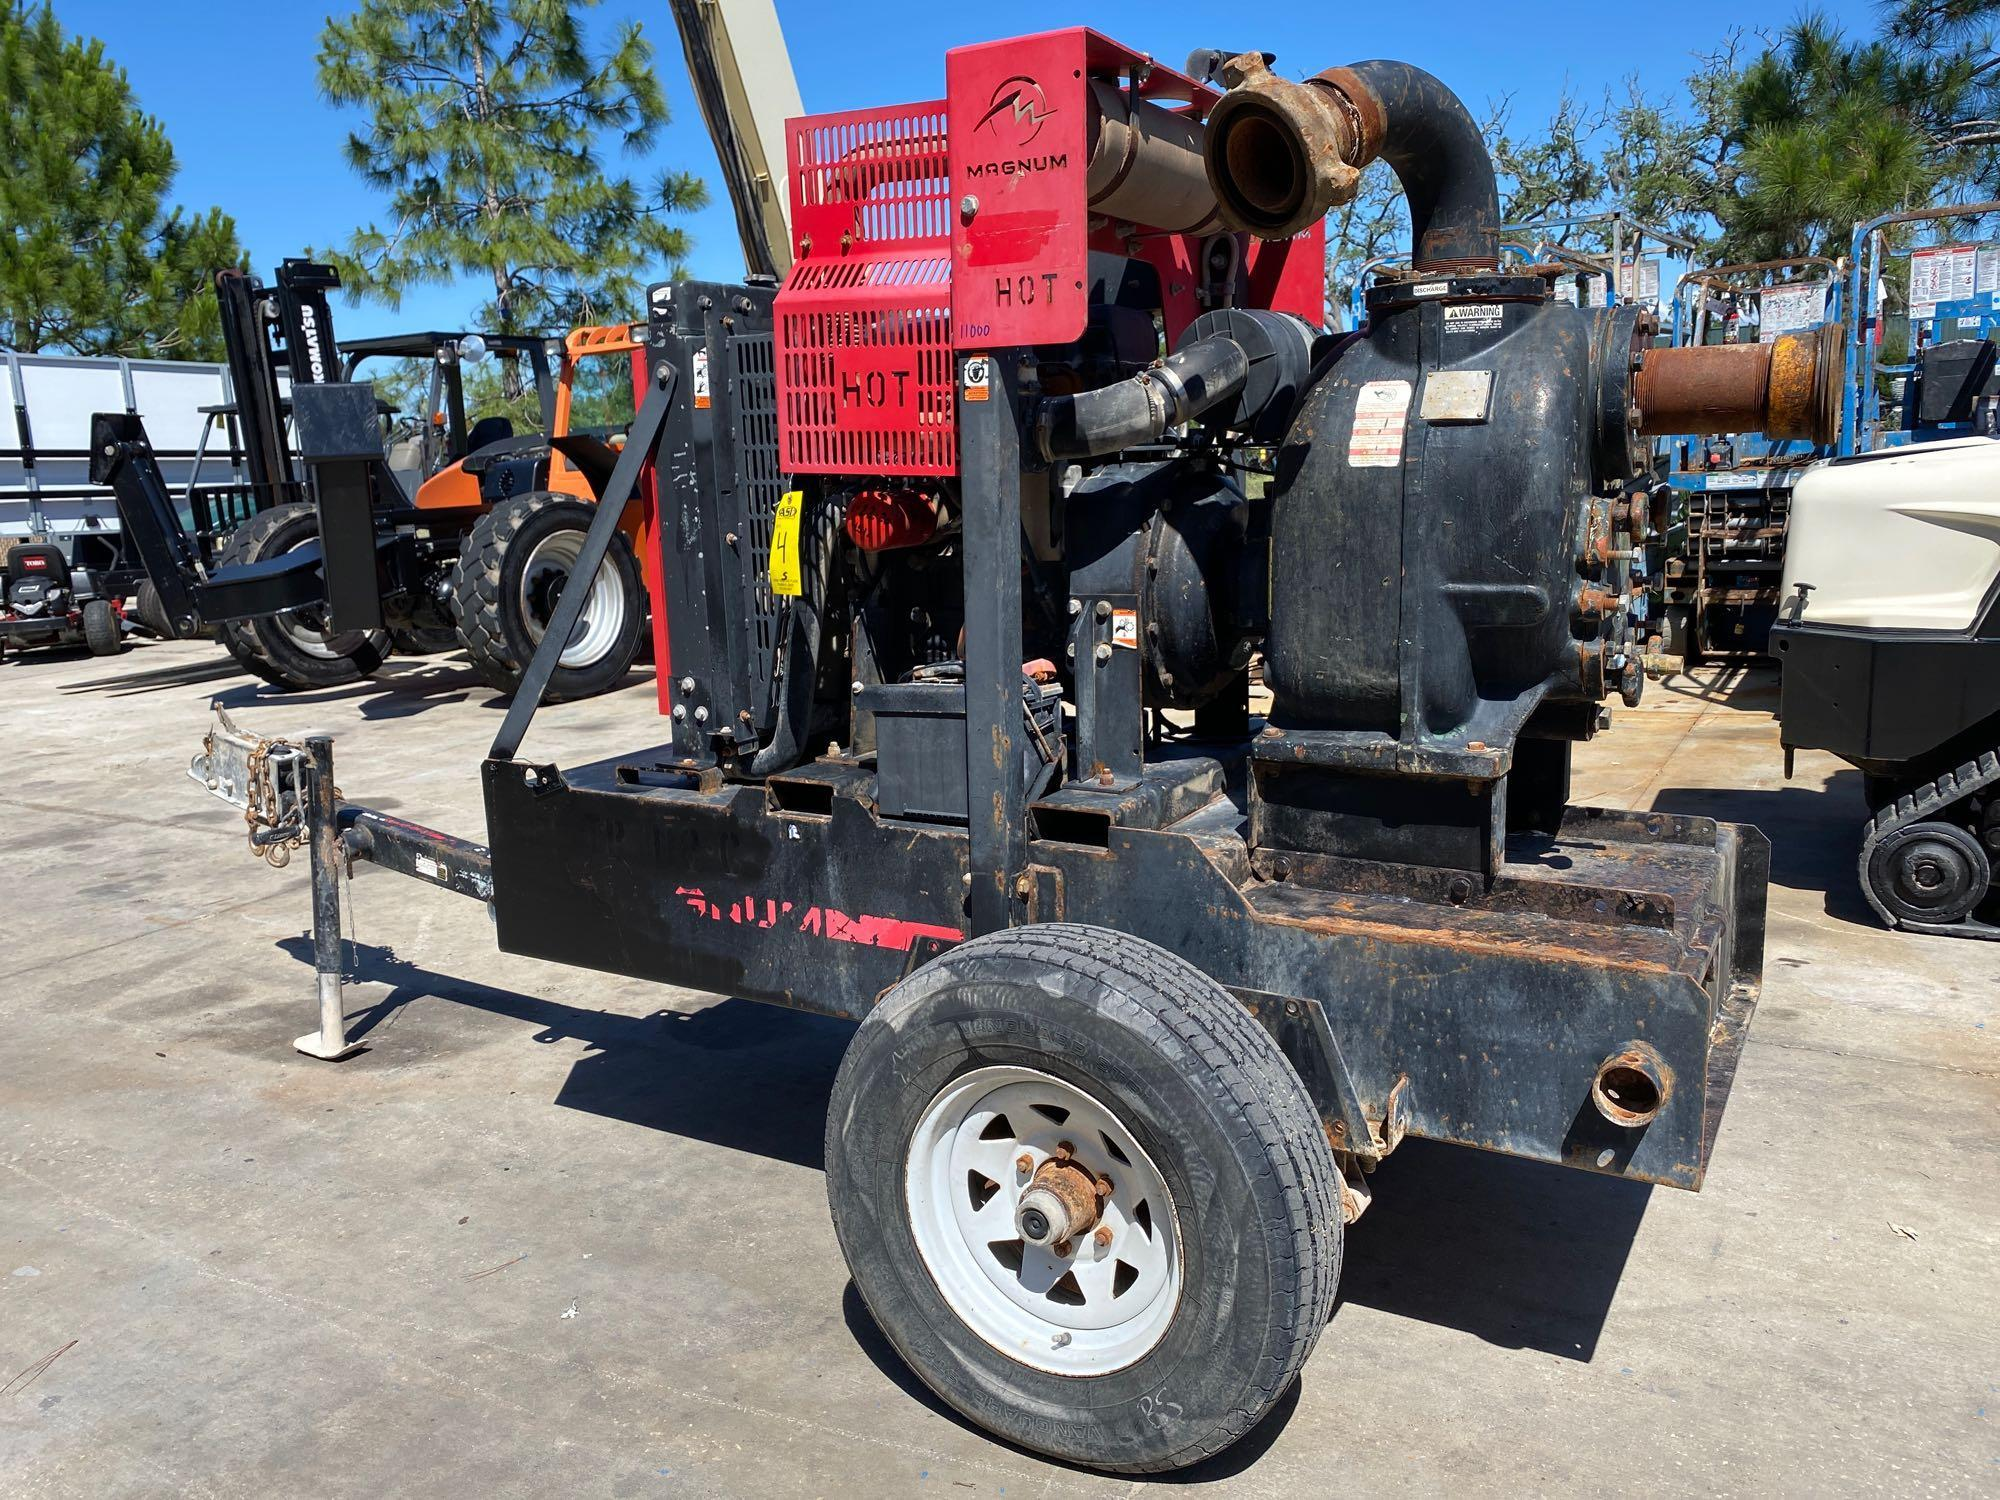 TRAILER MOUNTED MAGNUM 4 INCH DIESEL PUMP, RUNS AND OPERATES - Image 8 of 9